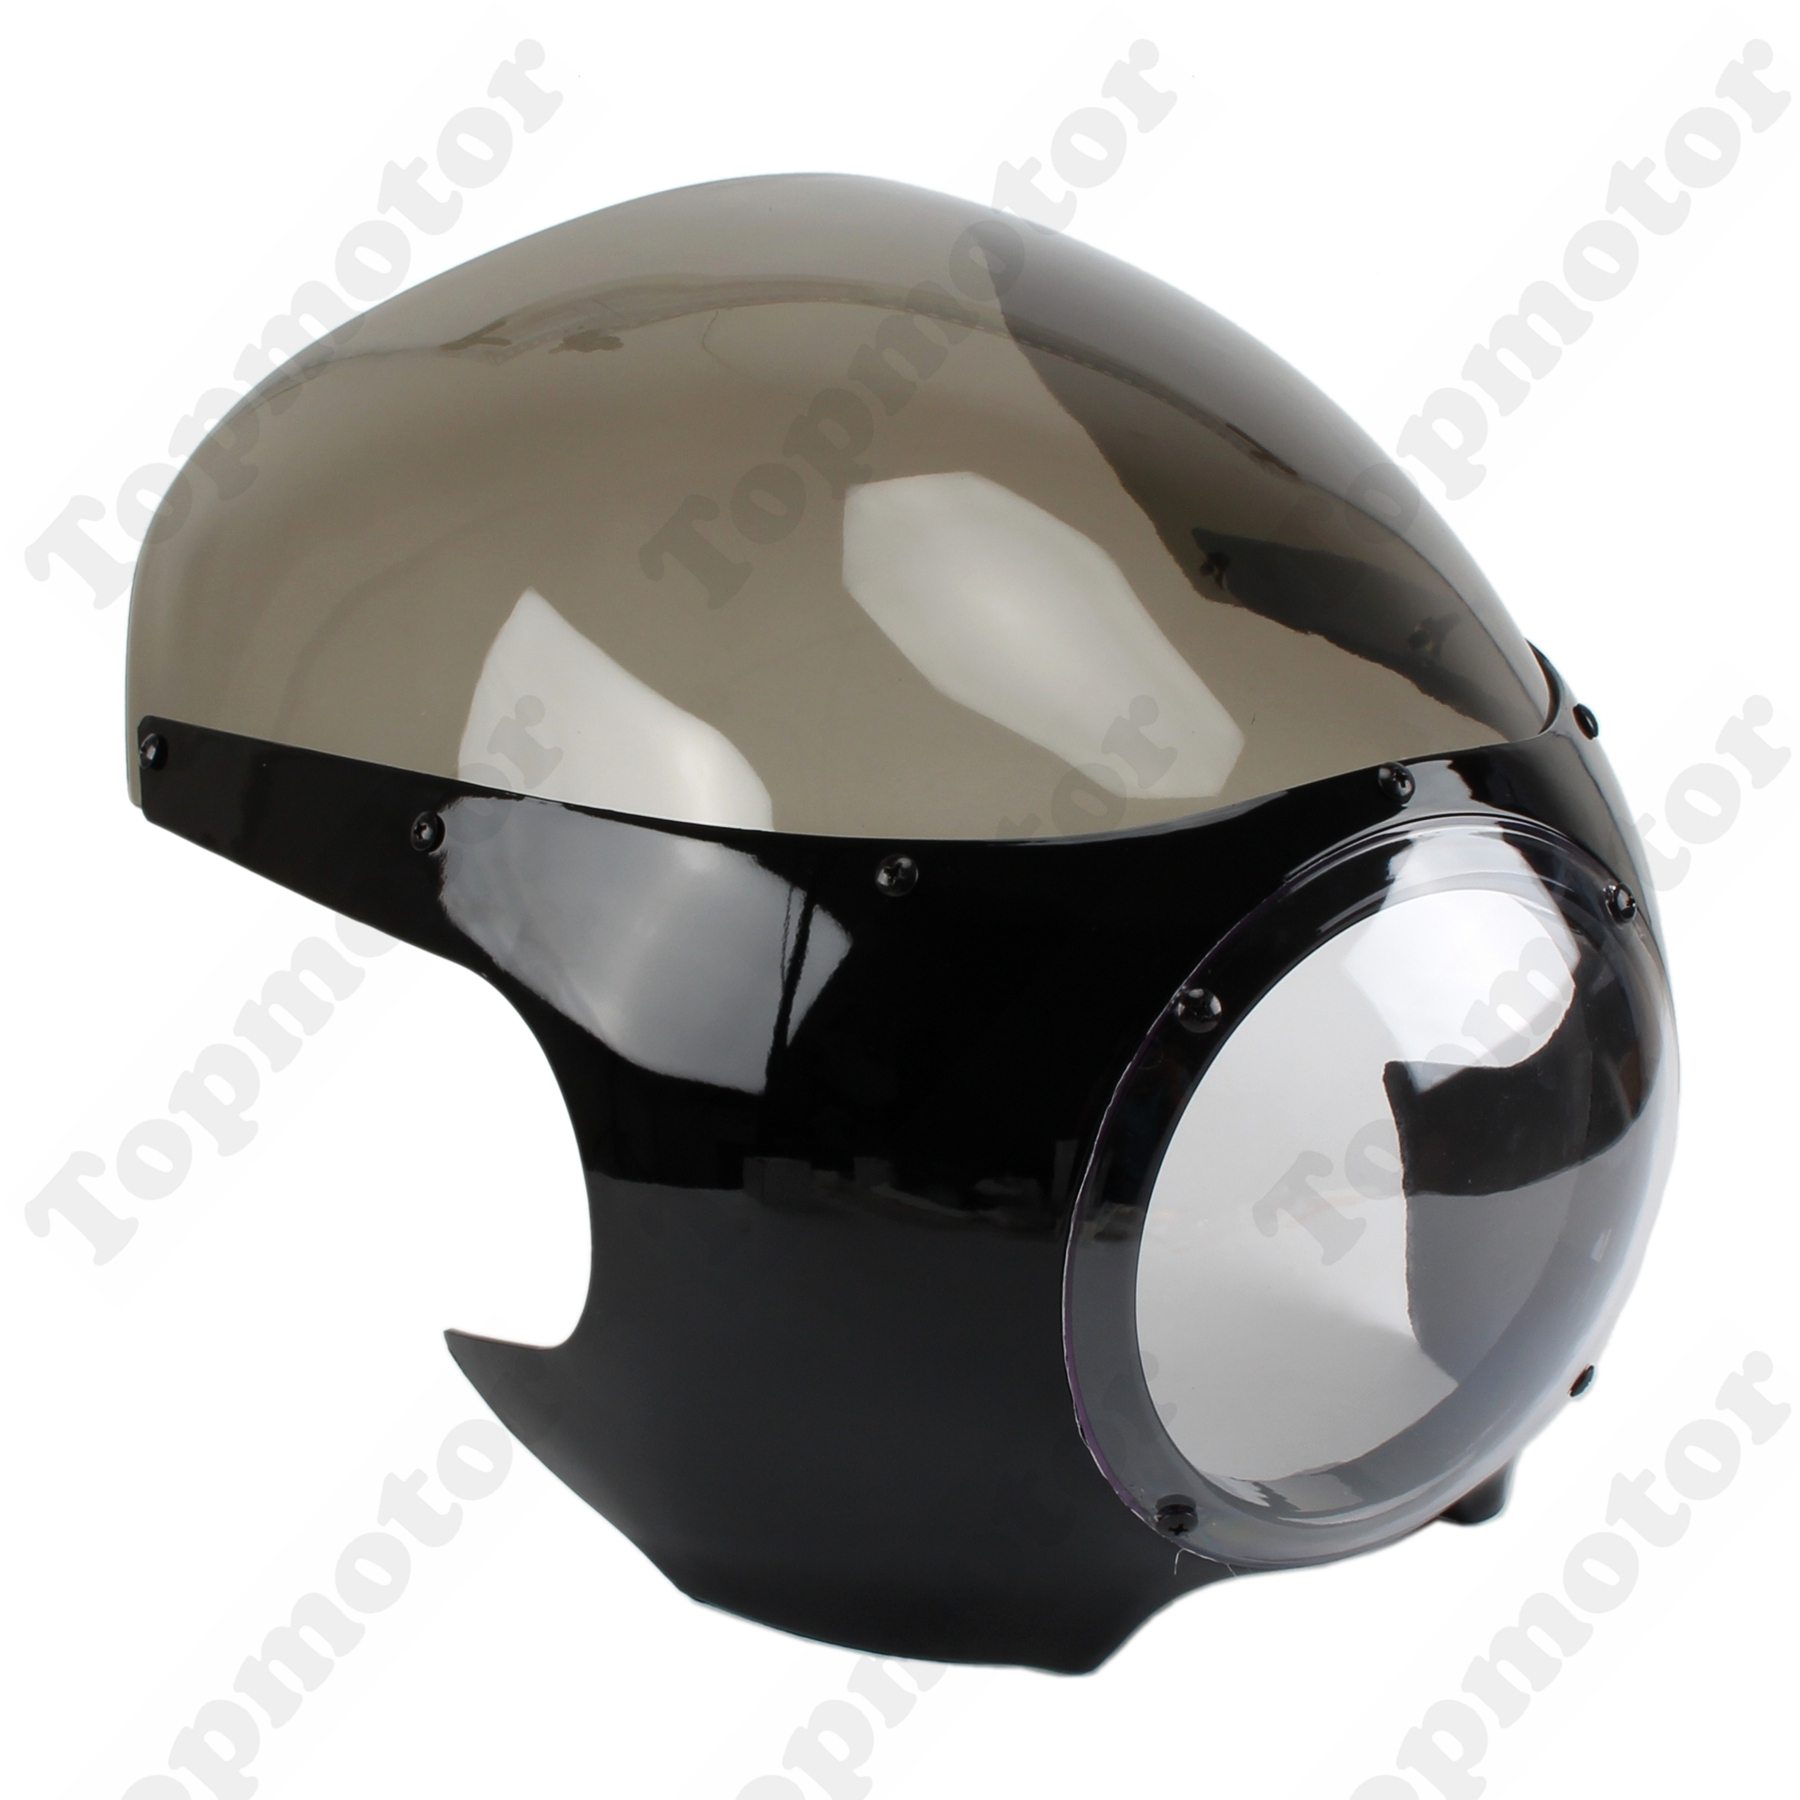 5 3/4 Front Cowl Motorcycle Headlight Fairing Cover Cafe Racer Windscreen For Harley Sportster XL 1200 883 2004-2009 Dyna старгородский бус ладень я г свято русские веды книга велеса издание мррк музеум